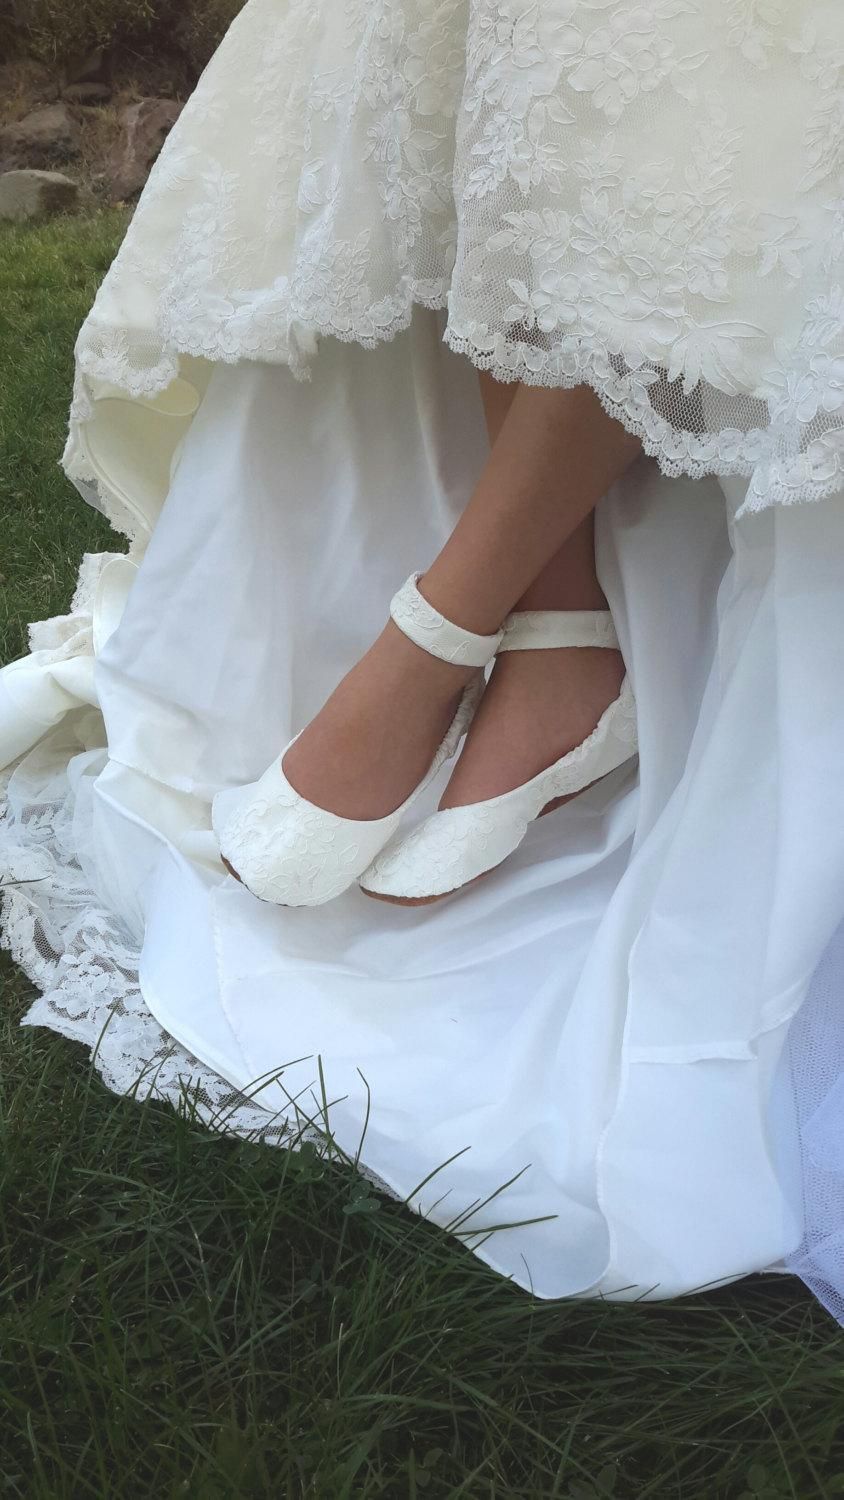 Lace Wedding Shoes with Ankle Strap, Flat Wedding Shoe, Lace ...